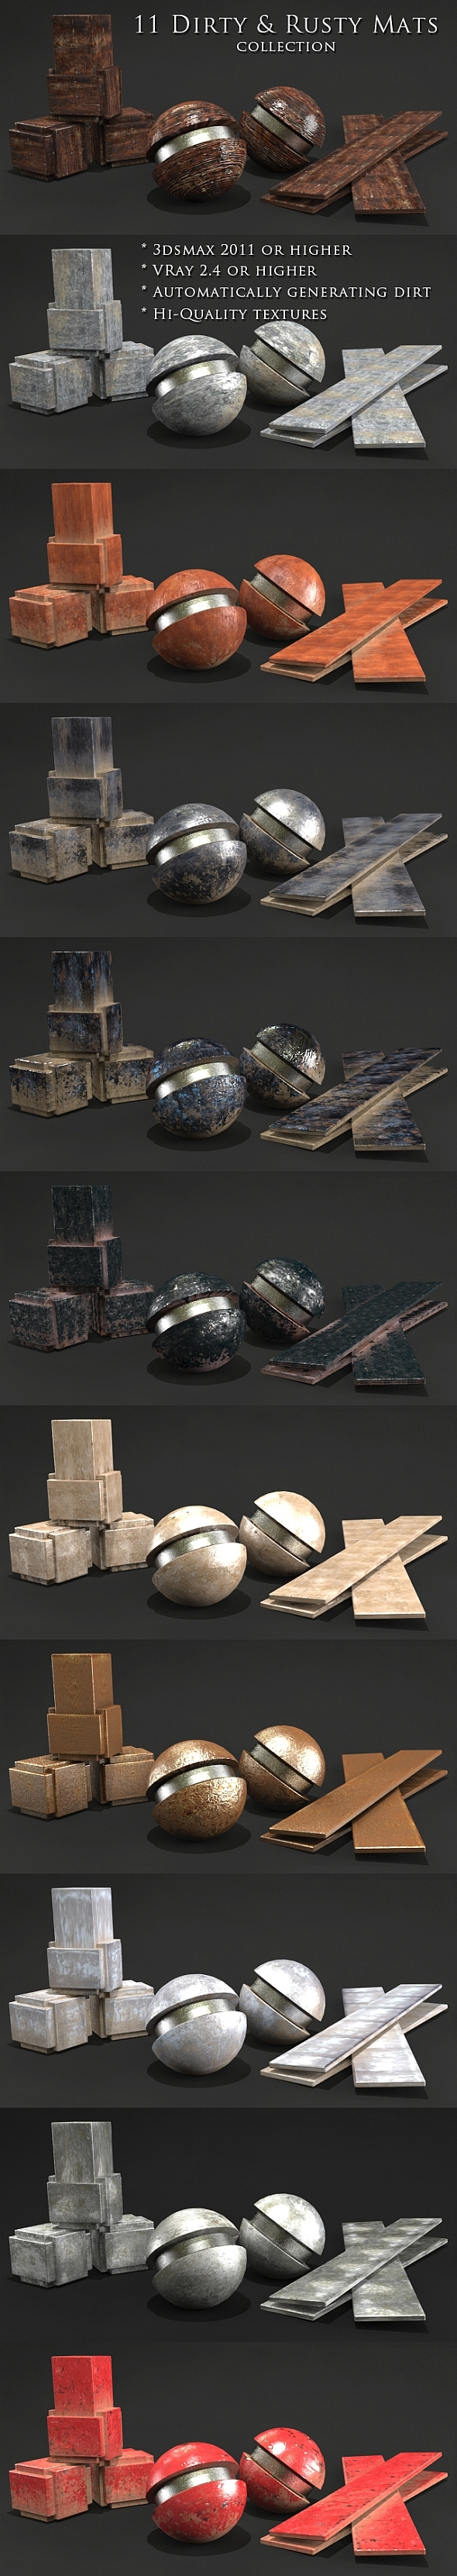 11 Dirty & Rusty mats Collection - 3DOcean Item for Sale